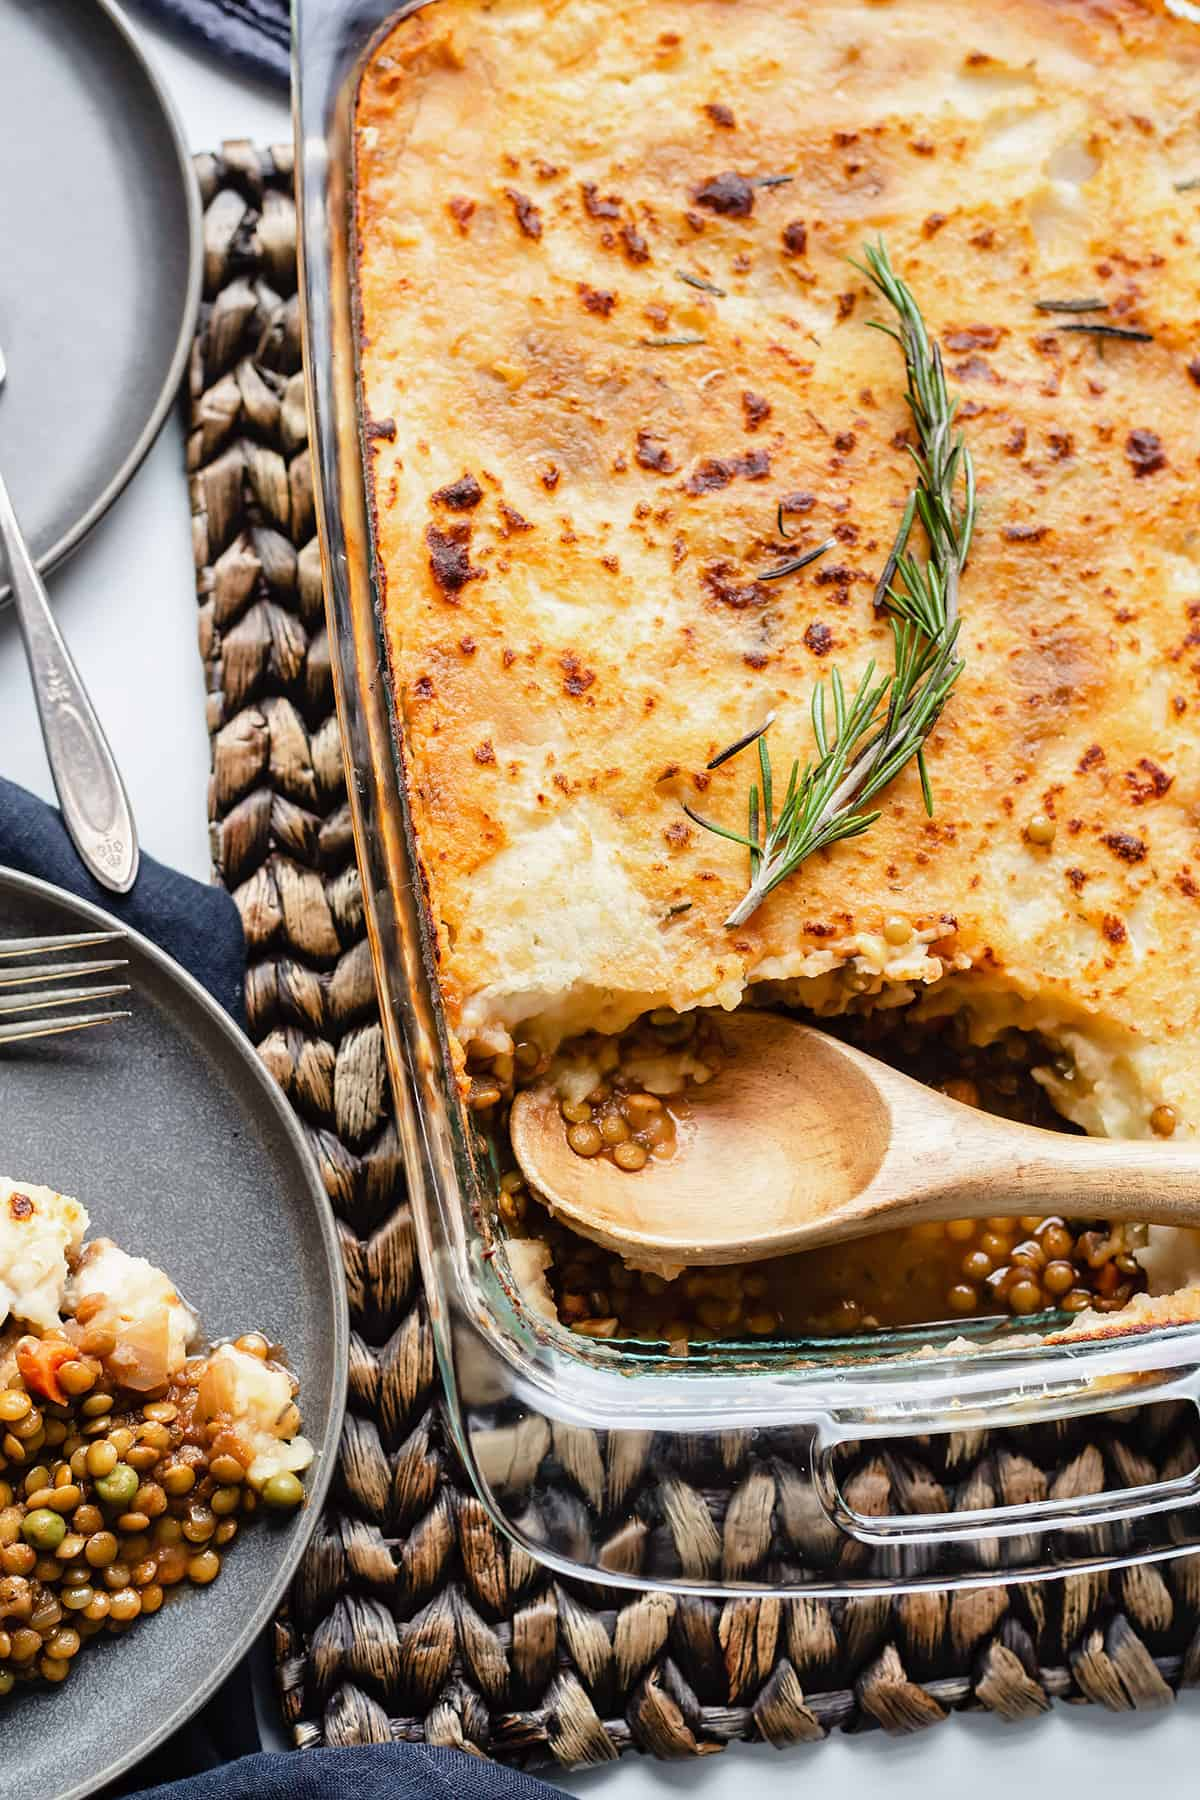 a shepherd's pie in a glass casserole dish with a piece taken out and a wooden spoon sitting in it